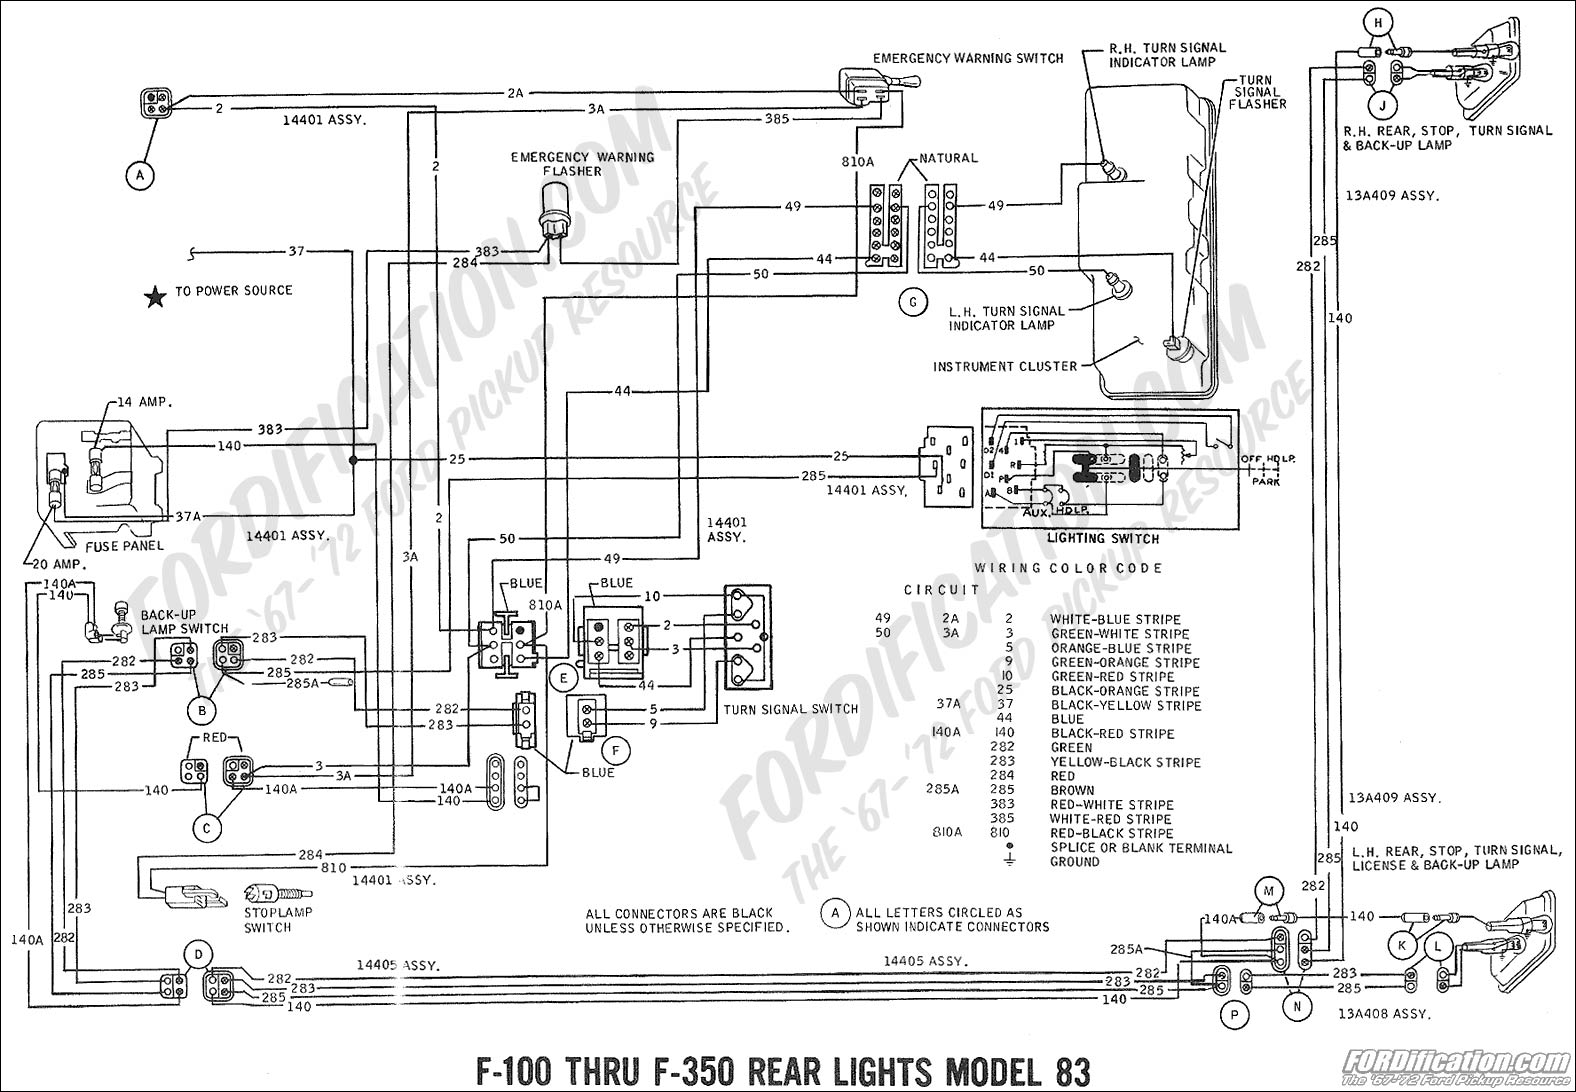 1993 Ford F 250 Wiring Diagram 1964 Falcon Truck Technical Drawings And Schematics Section H Rh Fordification Com